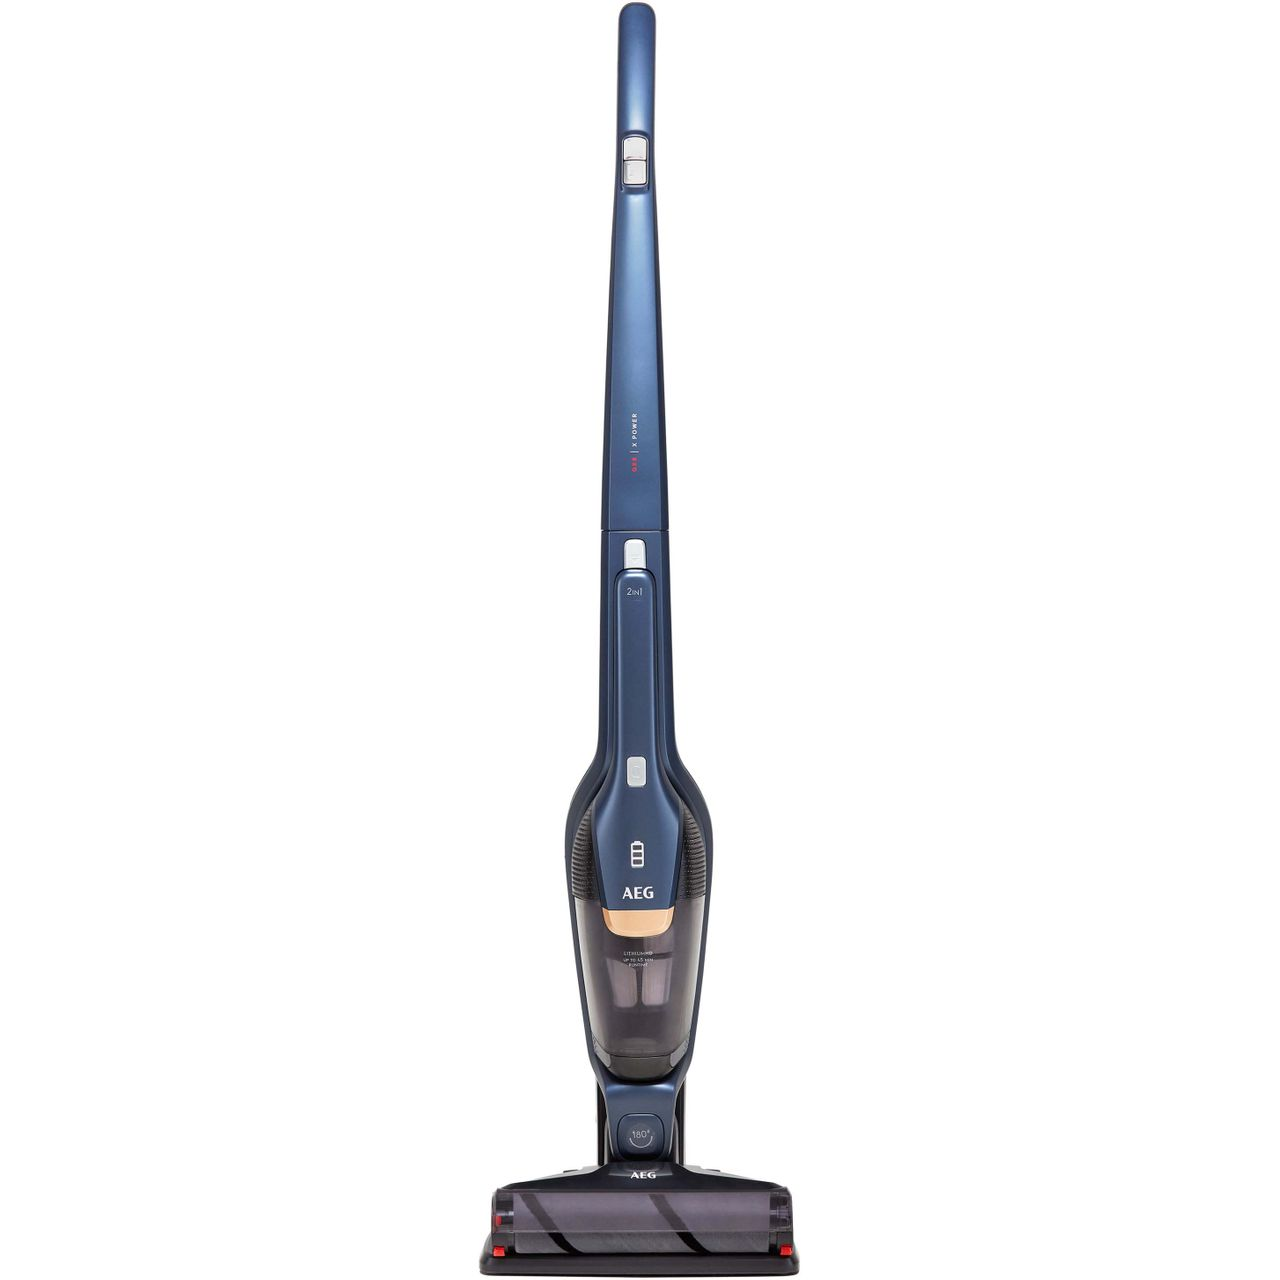 AEG QX8 X Power Pro QX8-1-45IB Cordless Vacuum Cleaner with up to 45 Minutes Run Time